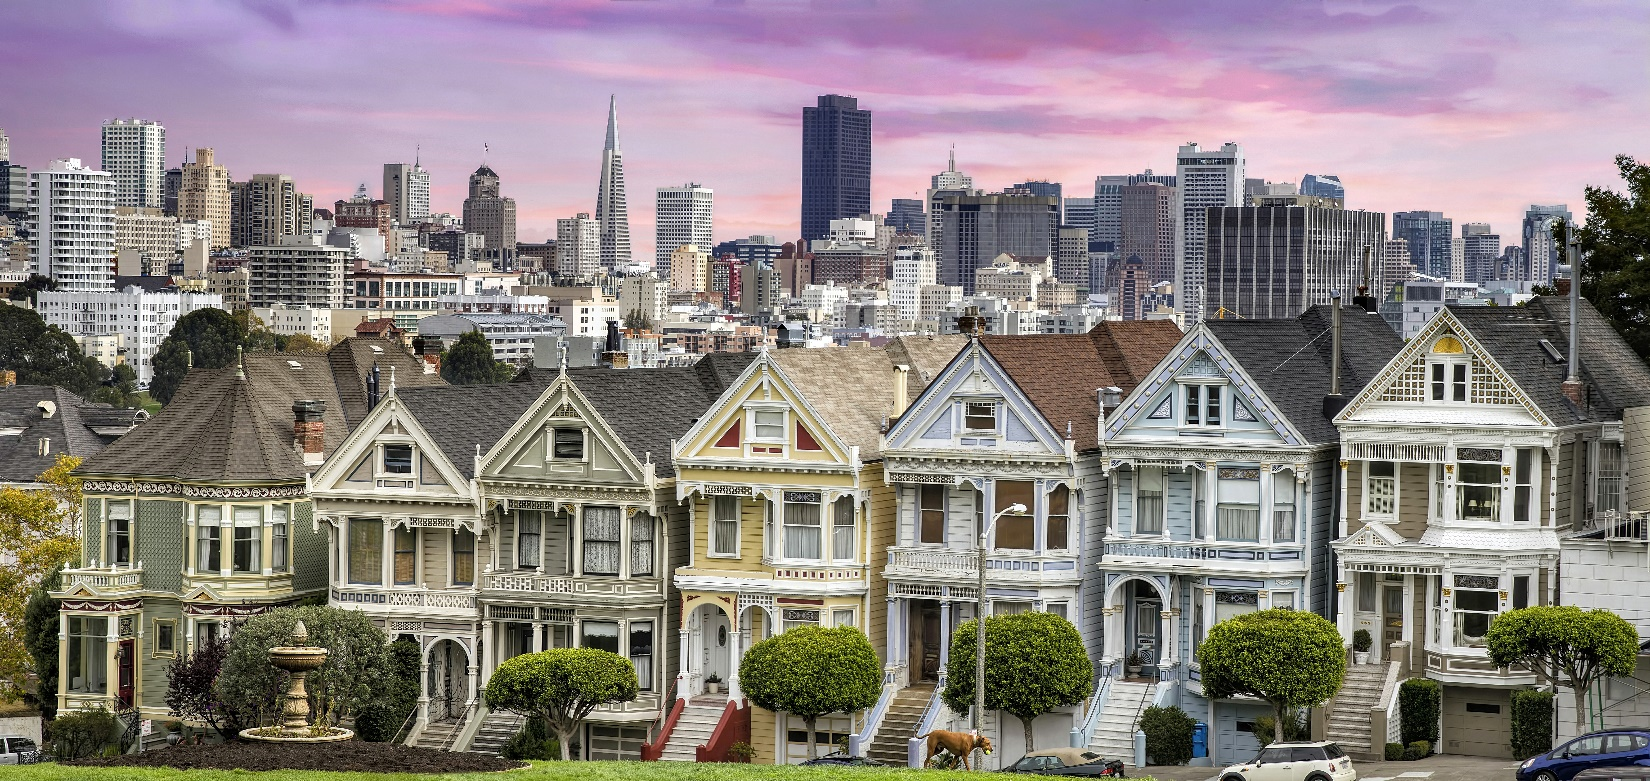 Row of colorful houses, called Painted Ladies, in San Francisco